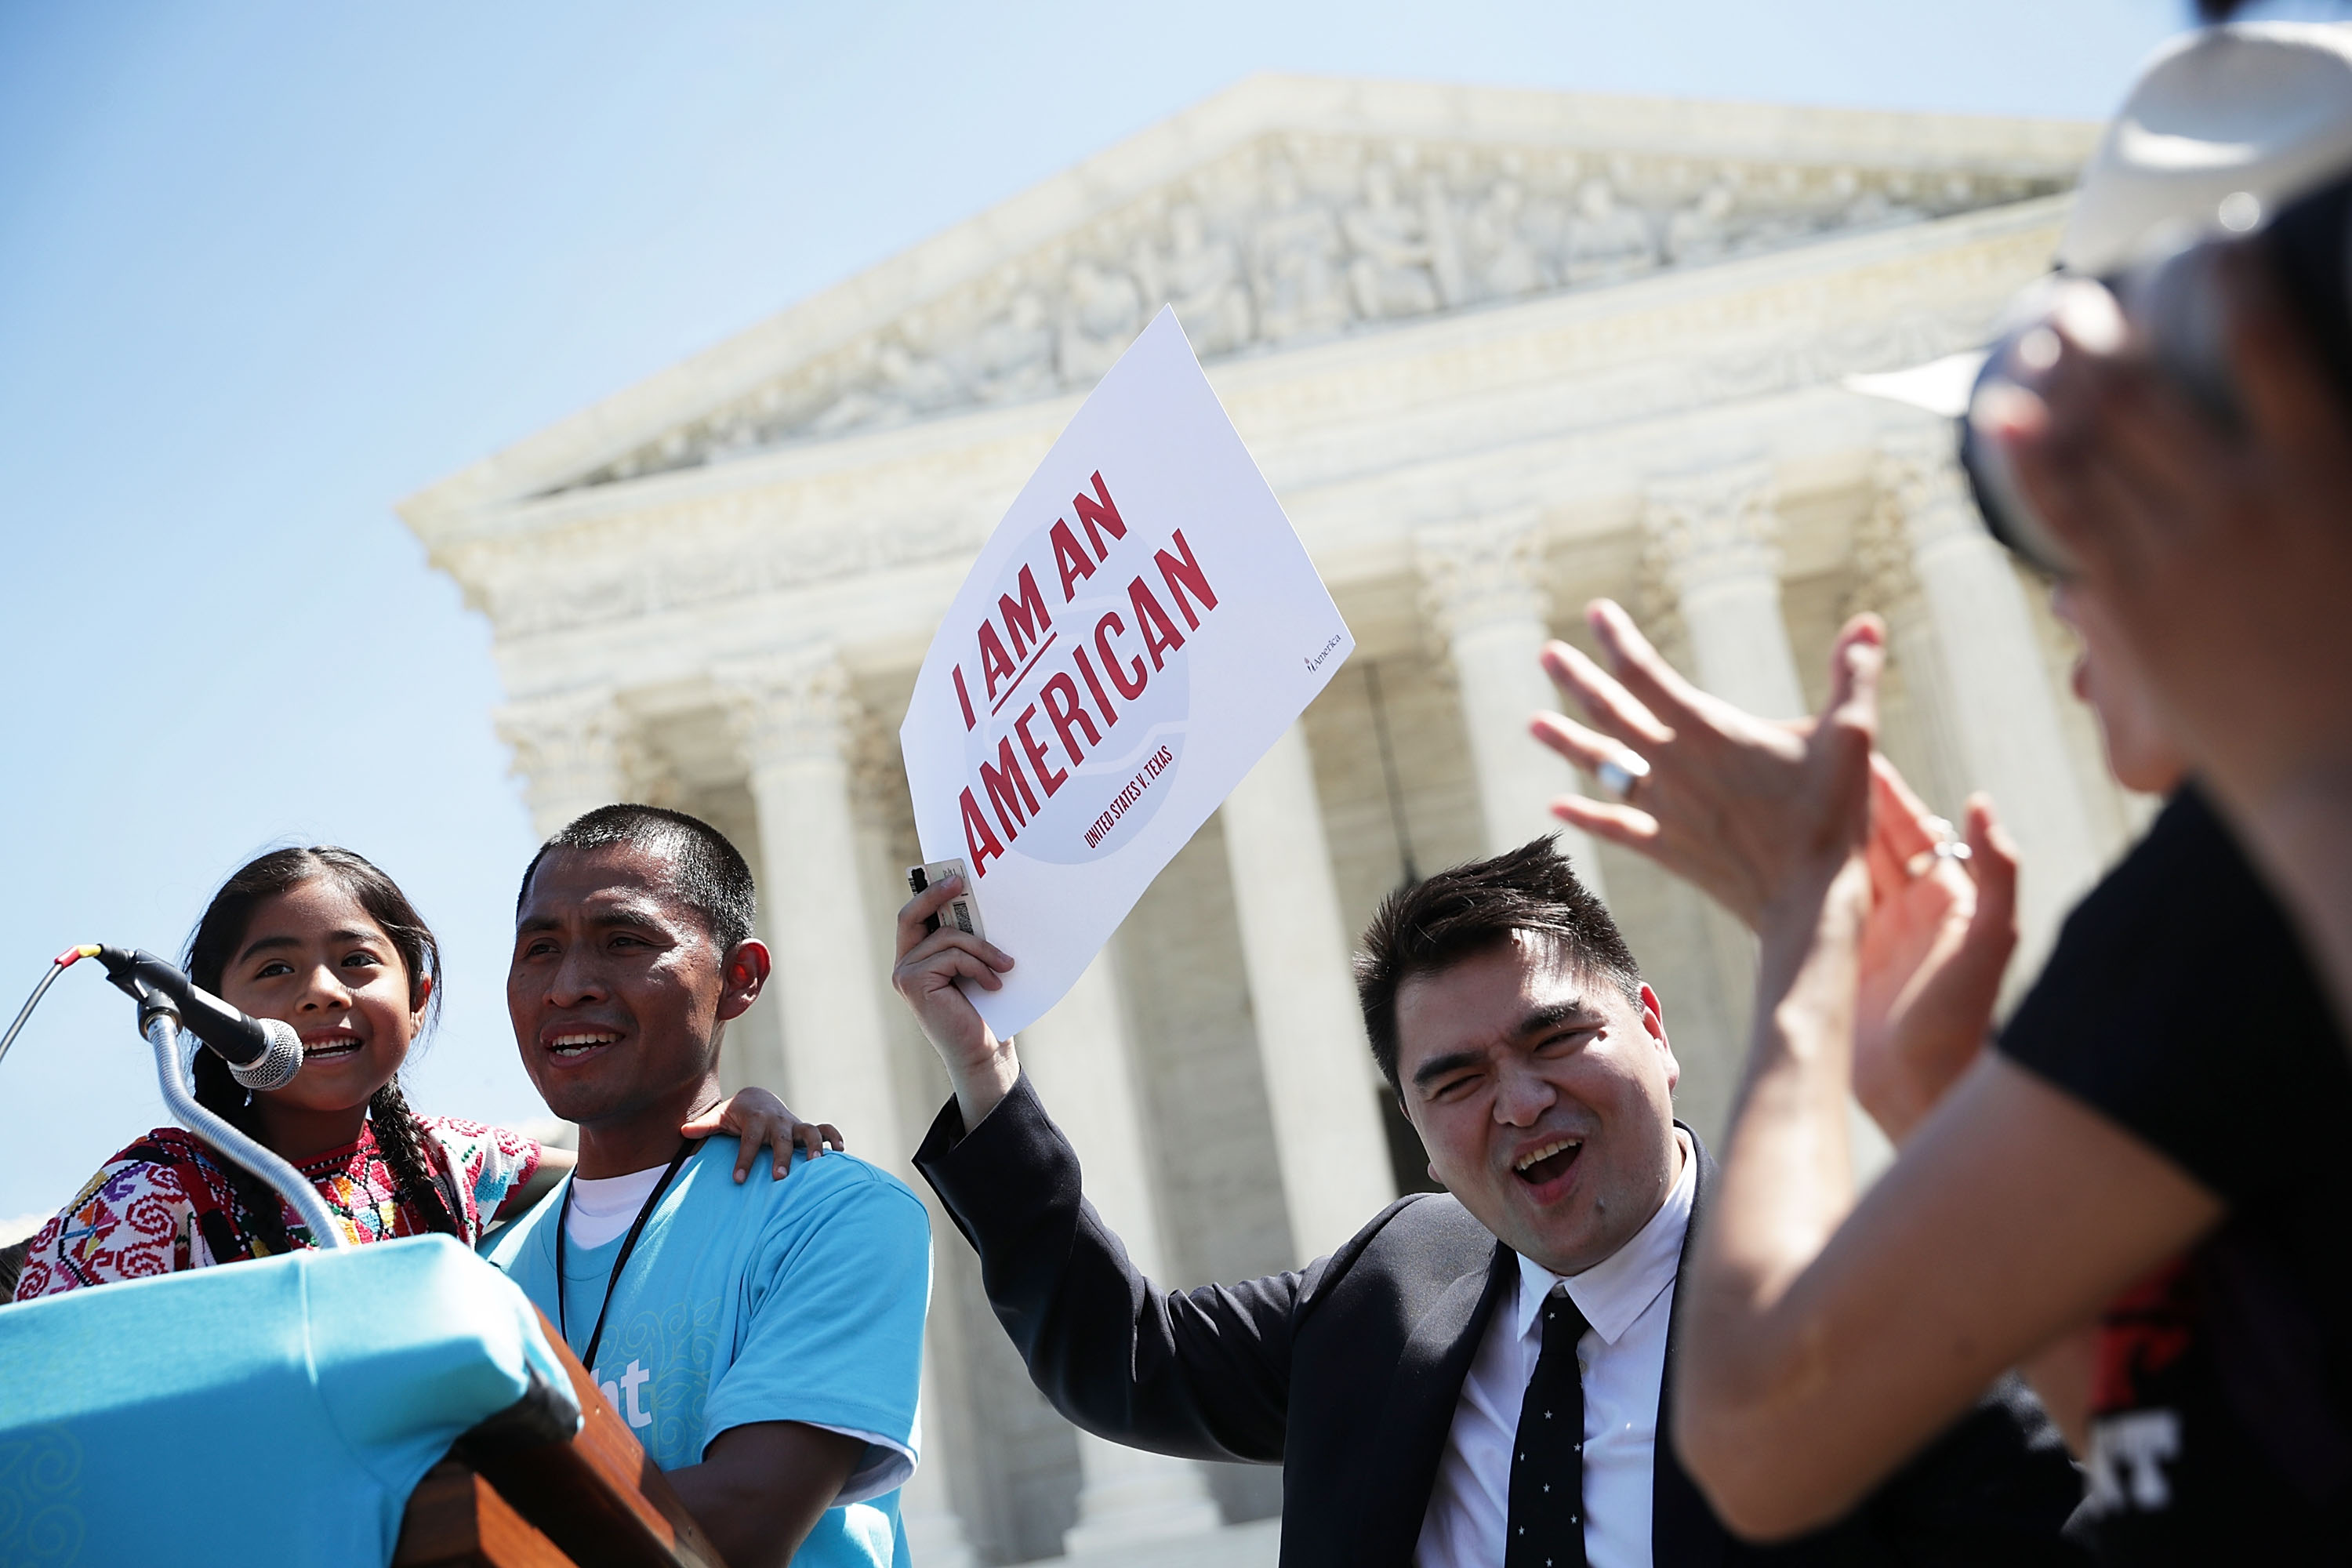 Pro-DACA demonstrators speak in front of the Supreme Court on April 18, 2016. (Alex Wong/Getty Images)